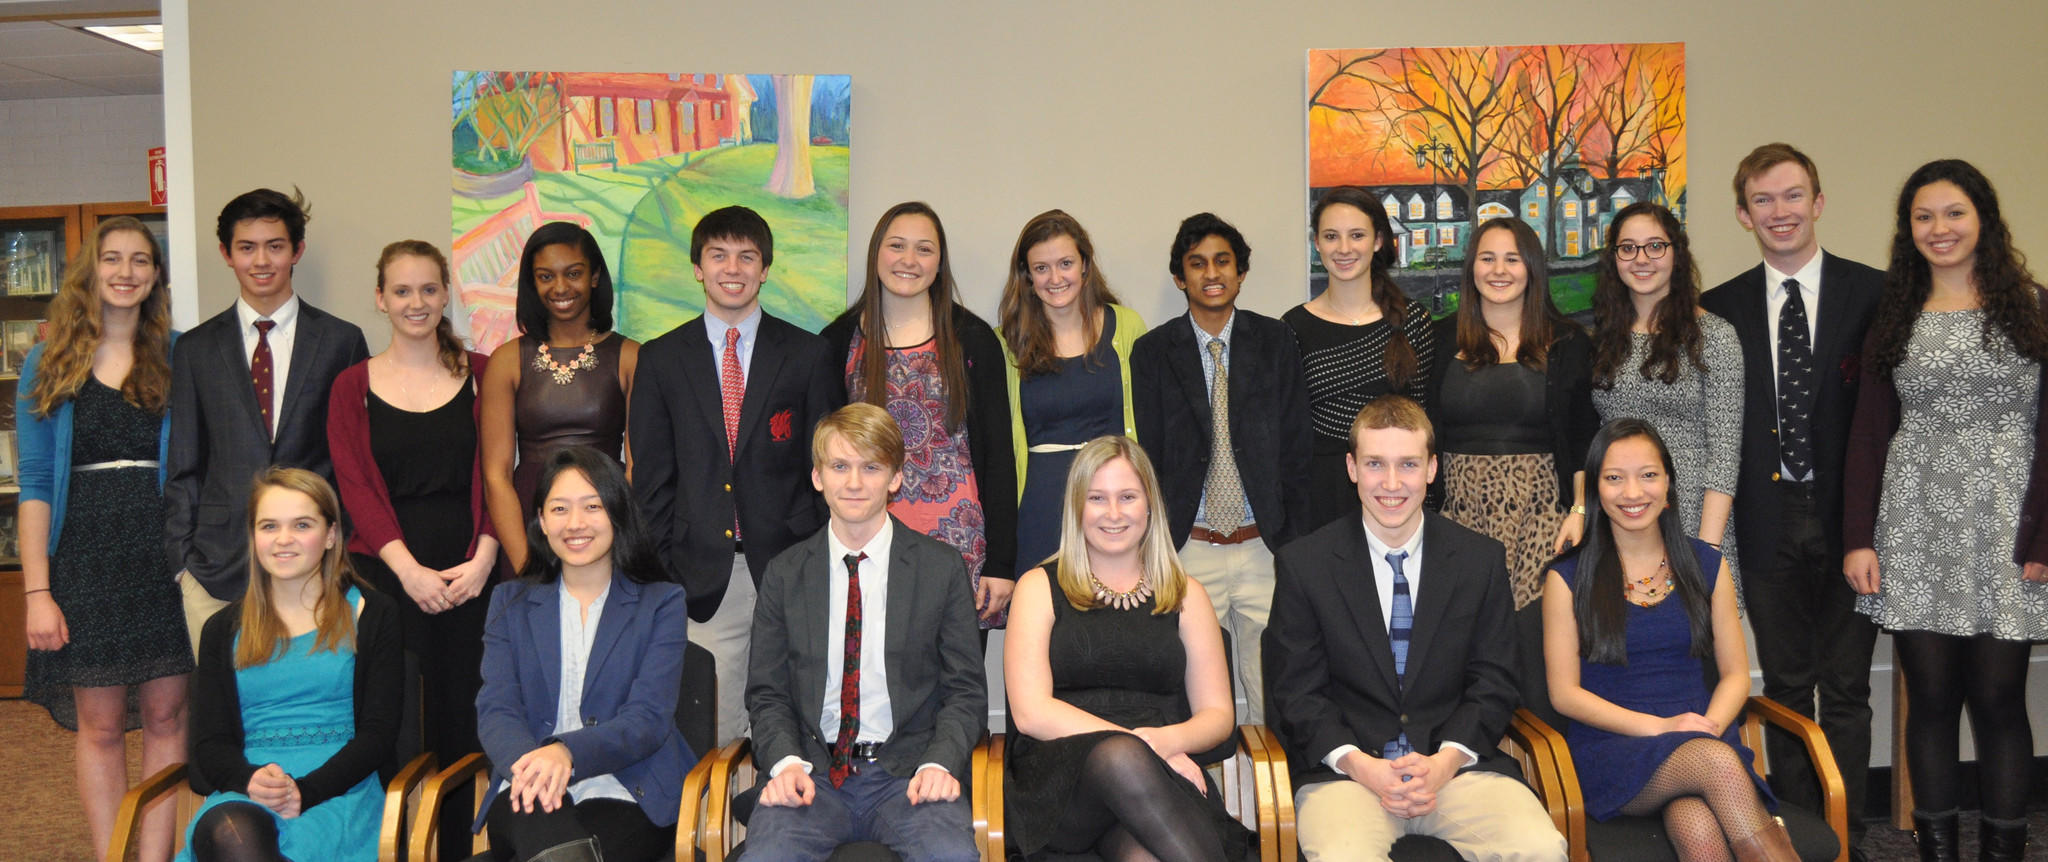 Nineteen members of the Class of '14 were inducted into Kingswood Oxford's chapter of the Cum Laude honor society on Feb. 19. Attorney Chris Shea '02 of West Hartford was the keynote speaker.